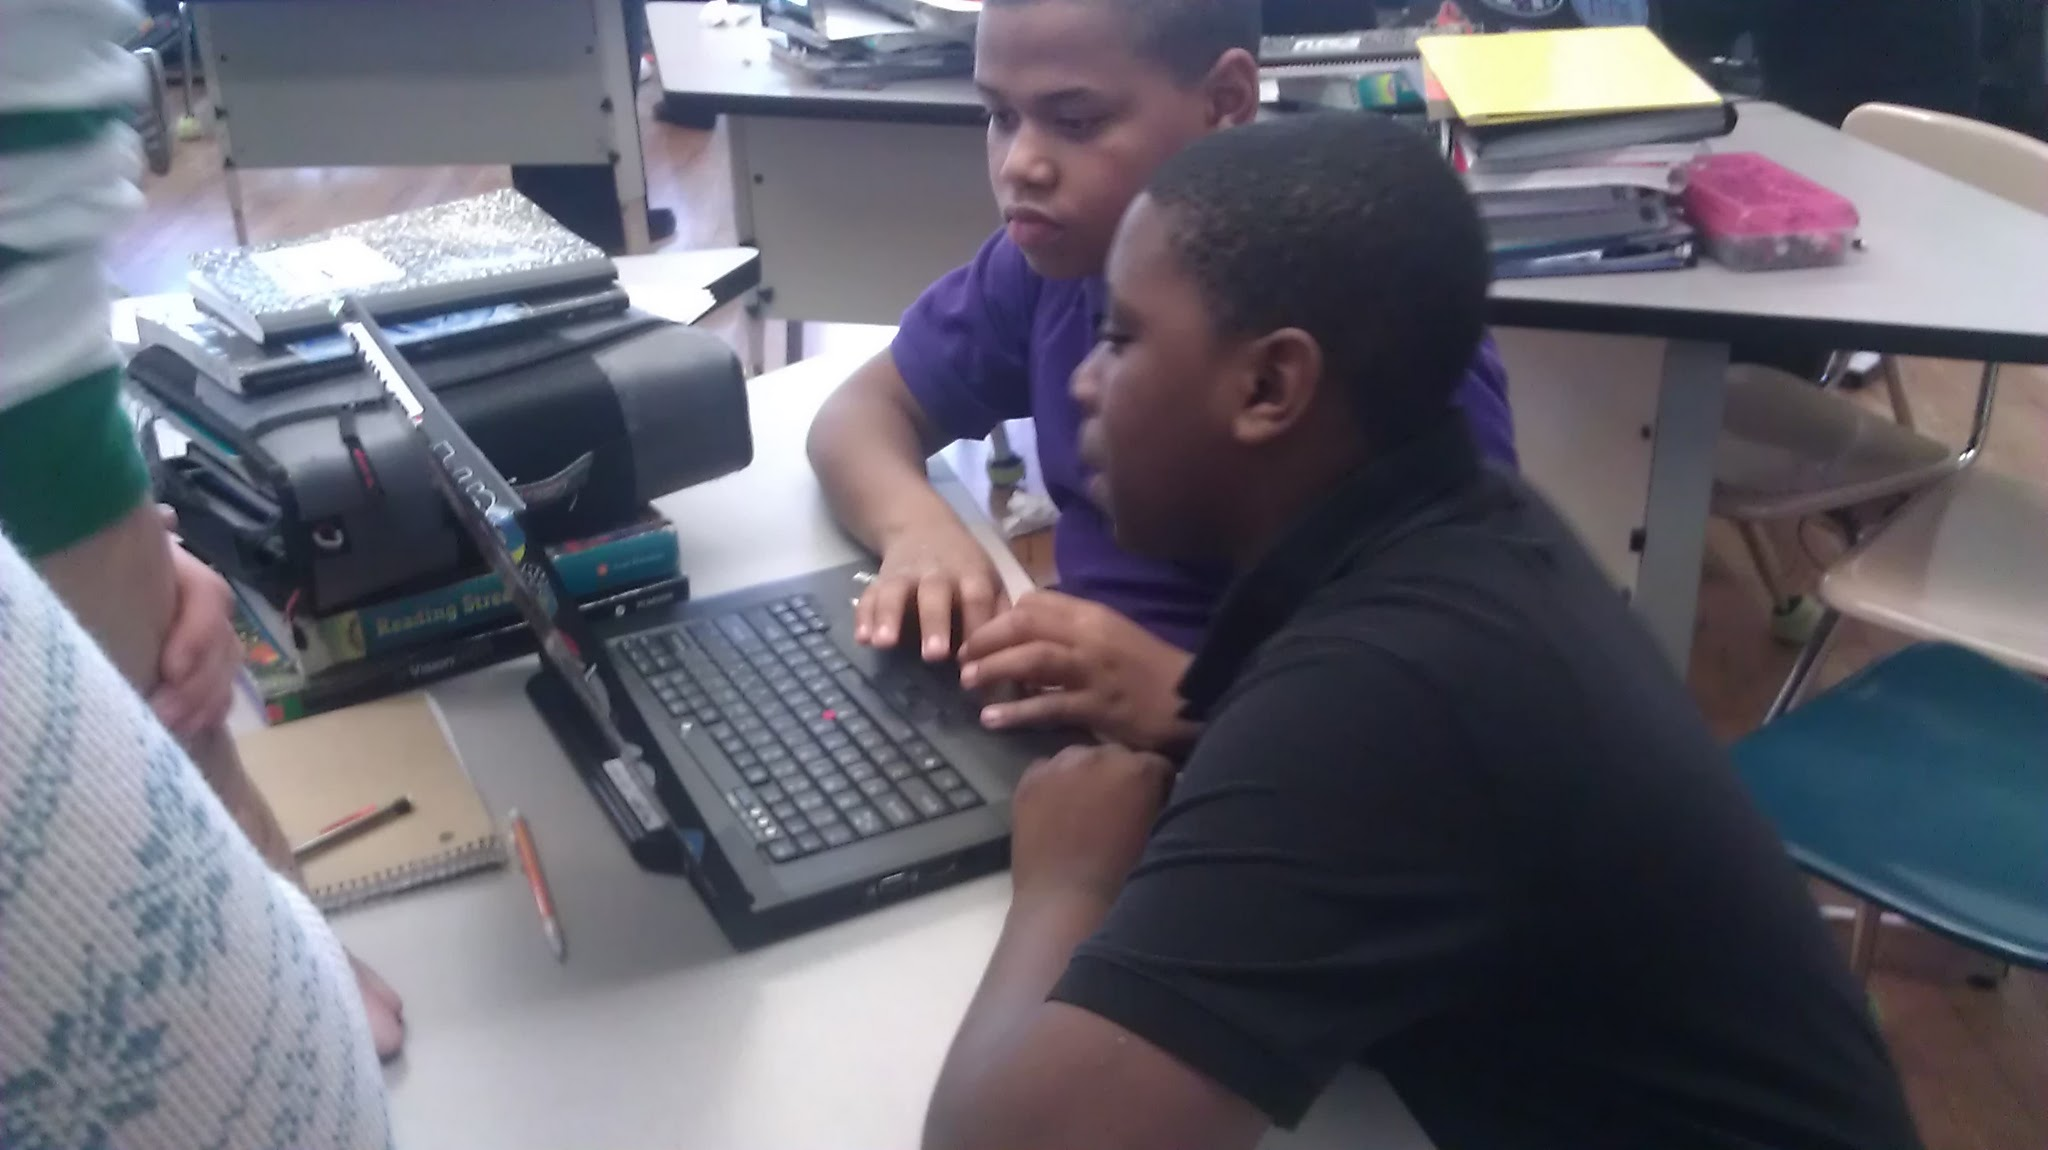 Two Boys Working Together